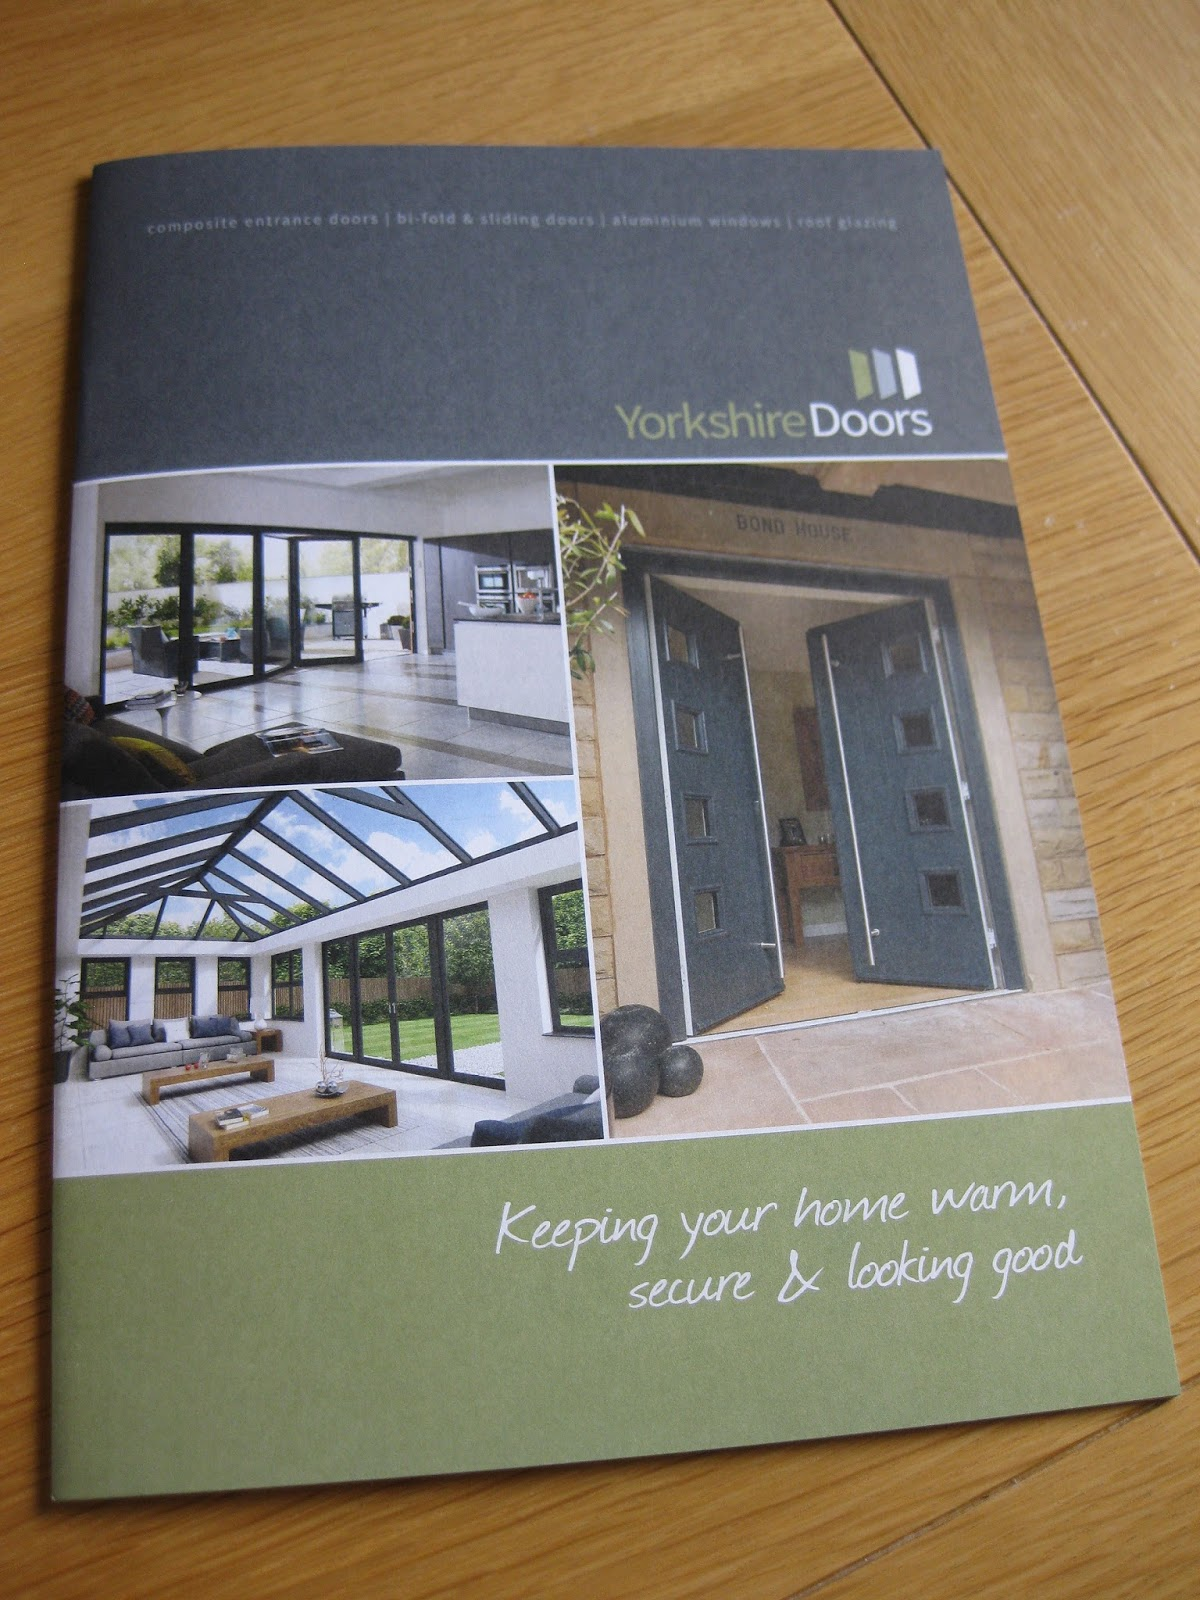 ... for Yorkshire Doors has been designed by Aldred Design. An updated brand identity has also been created and applied to all literature and promotional ... & Whatu0027s new?: Yorkshire Doors Brochure pezcame.com